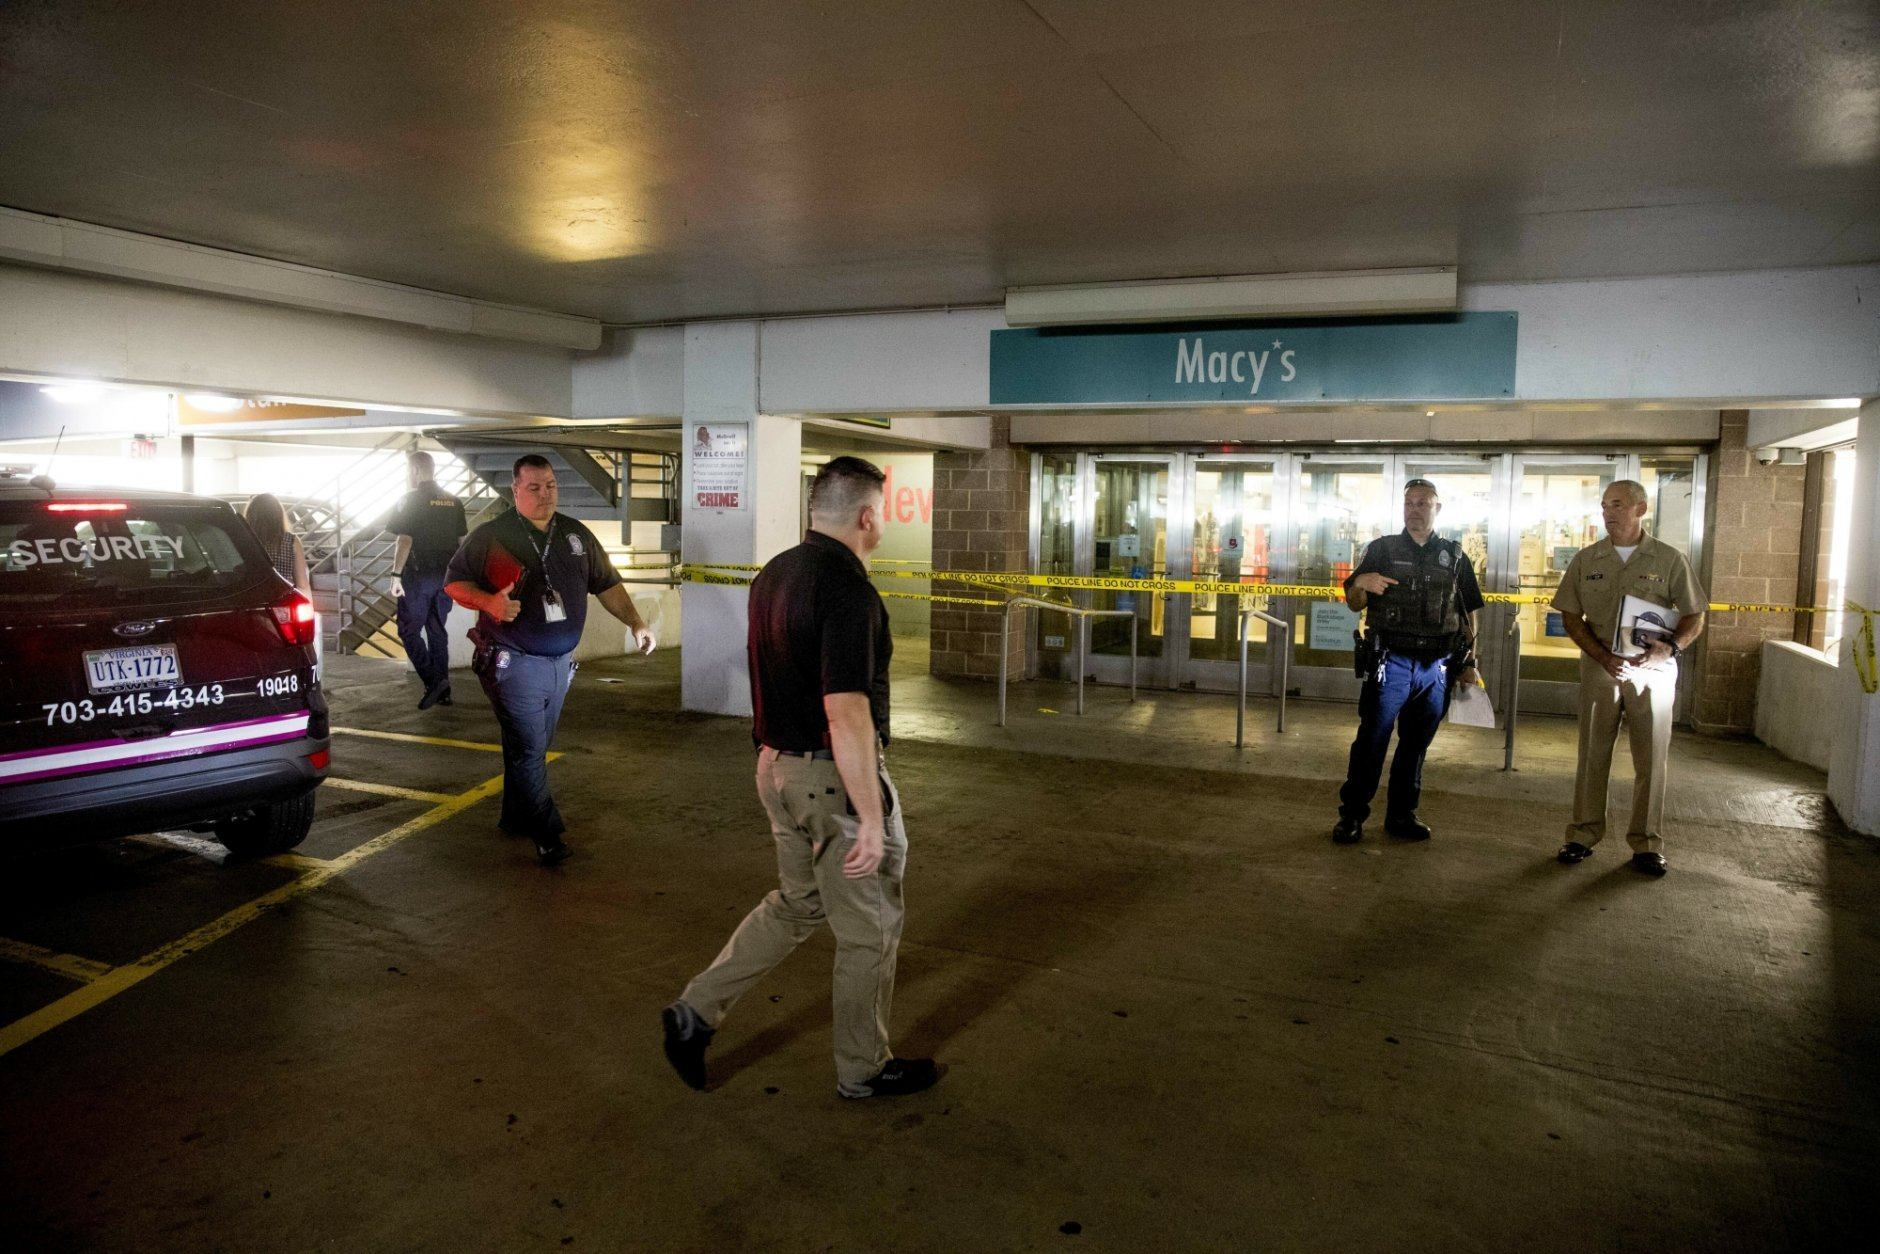 Police work a crime scene following a shooting at the parking garage for the Fashion Centre at Pentagon City, also known as Pentagon City Mall, Monday, July 1, 2019, in Arlington. (AP Photo/Andrew Harnik)